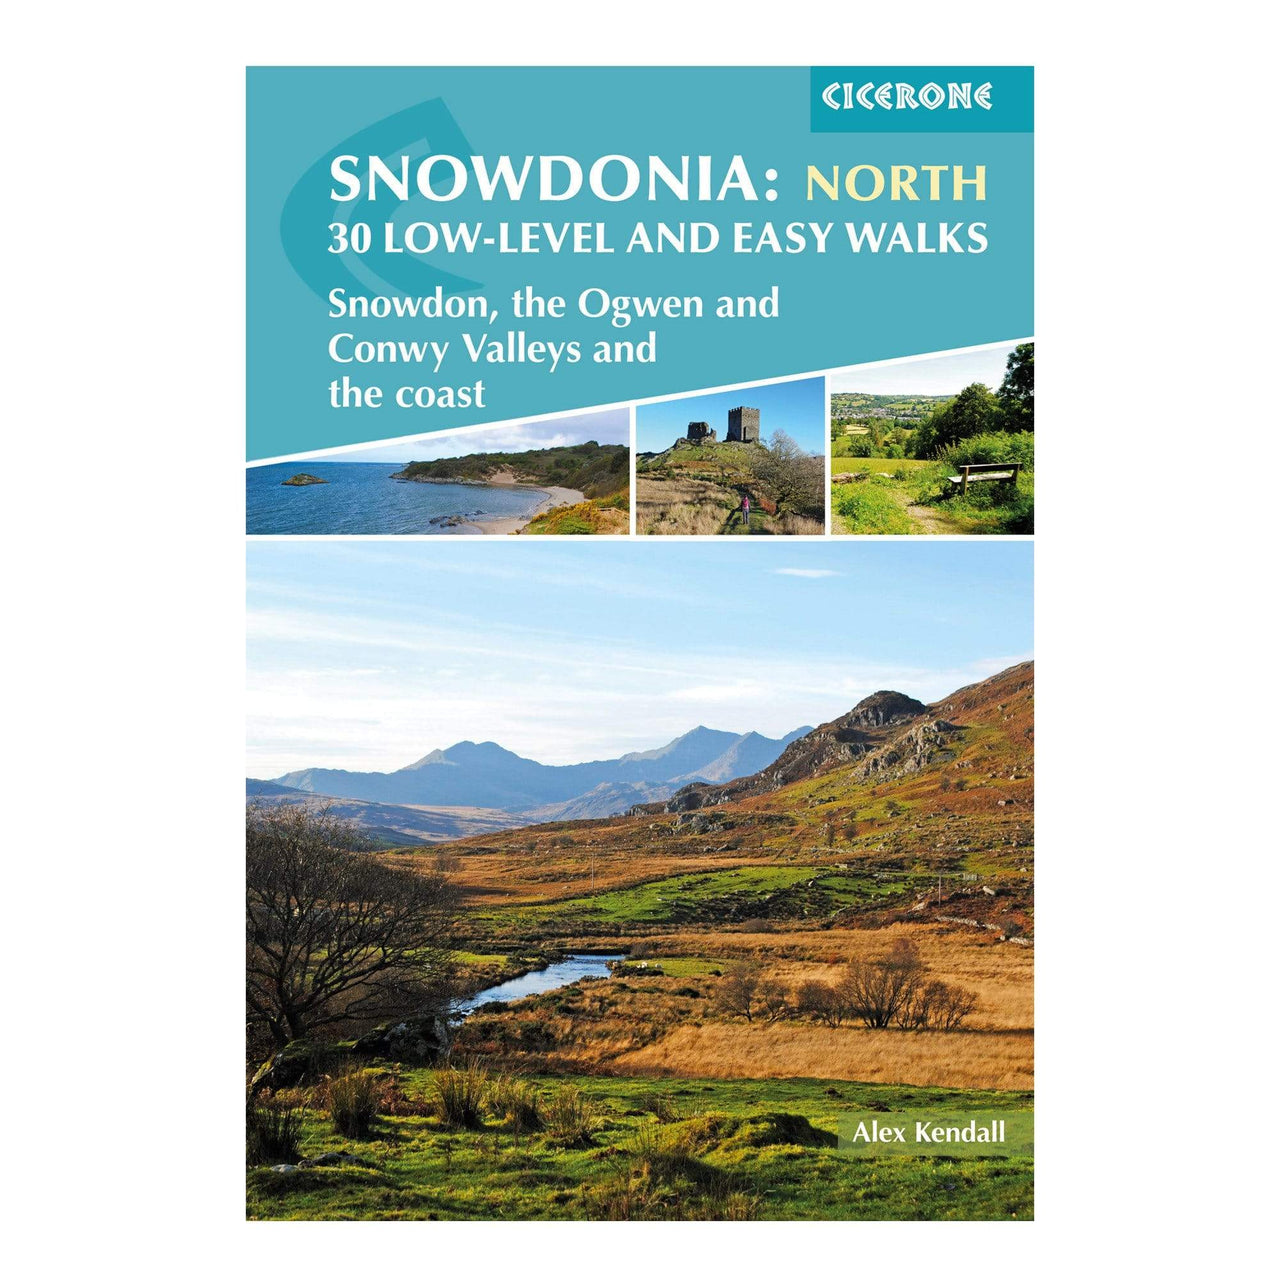 Snowdonia: 30 Low Level Easy Walks